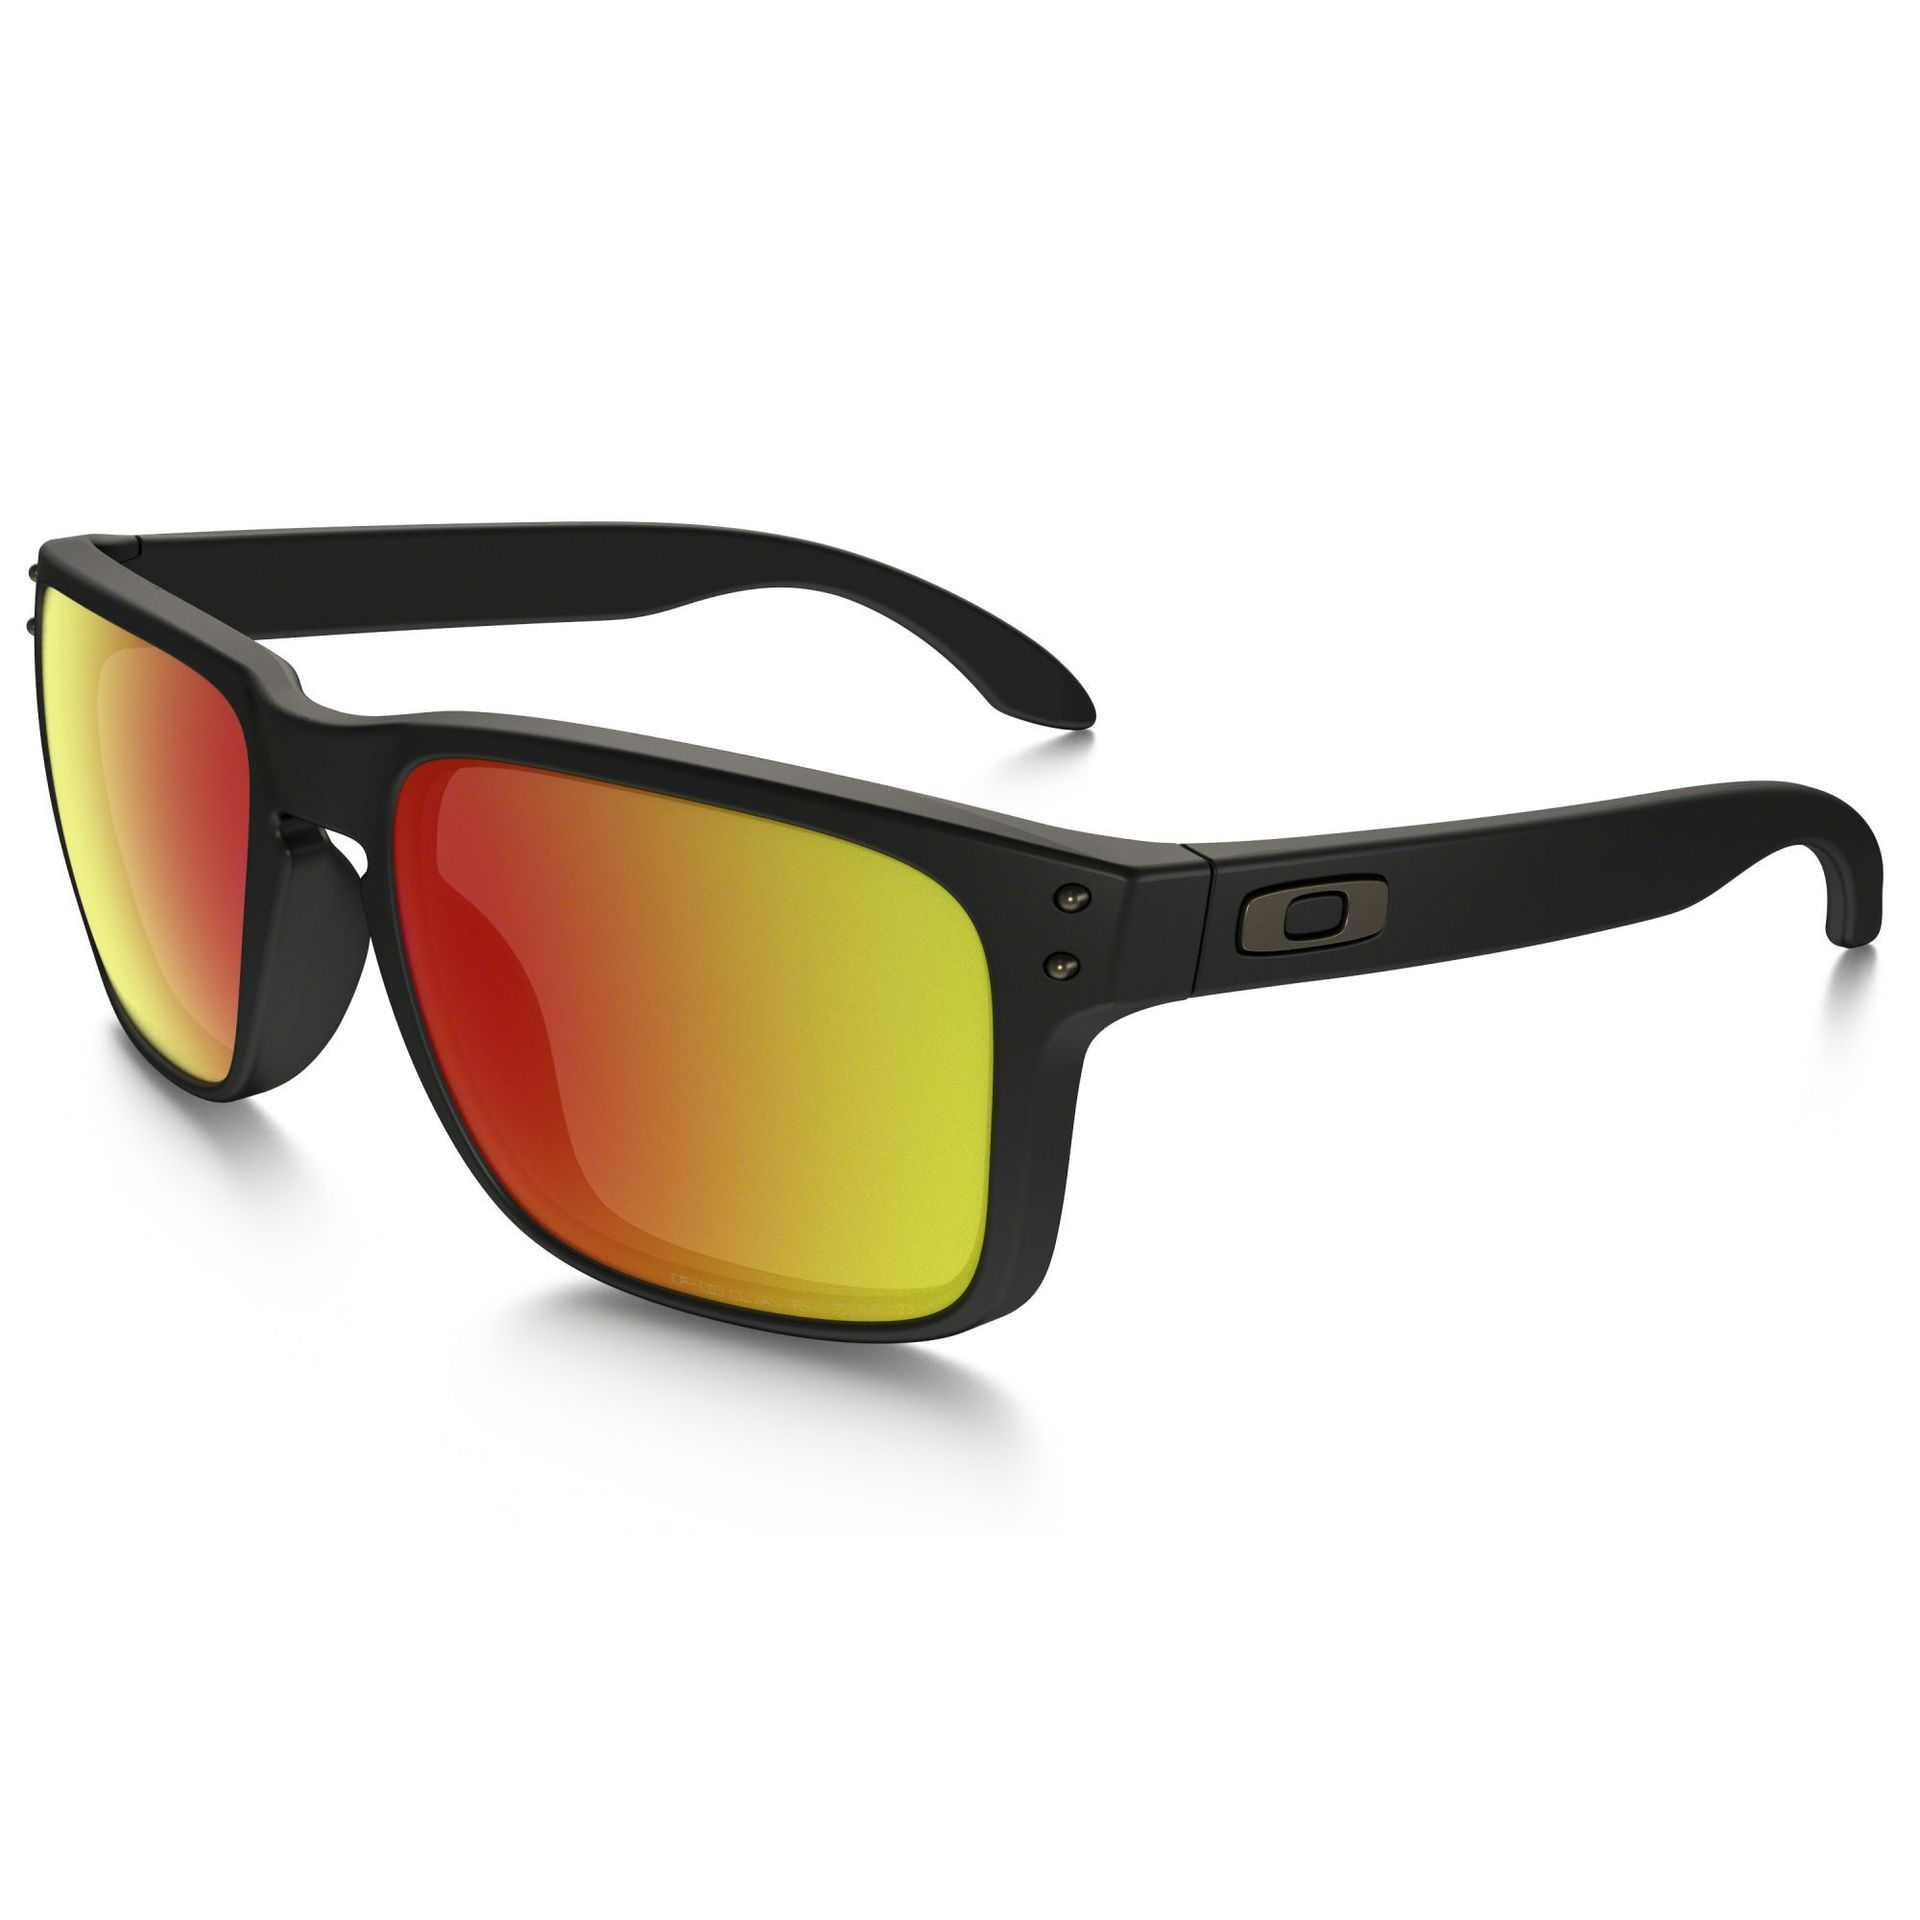 OKULARY OAKLEY HOLBROOK POLARIZED MATTY BLACK RUBY IRIDIUM POLARIZED